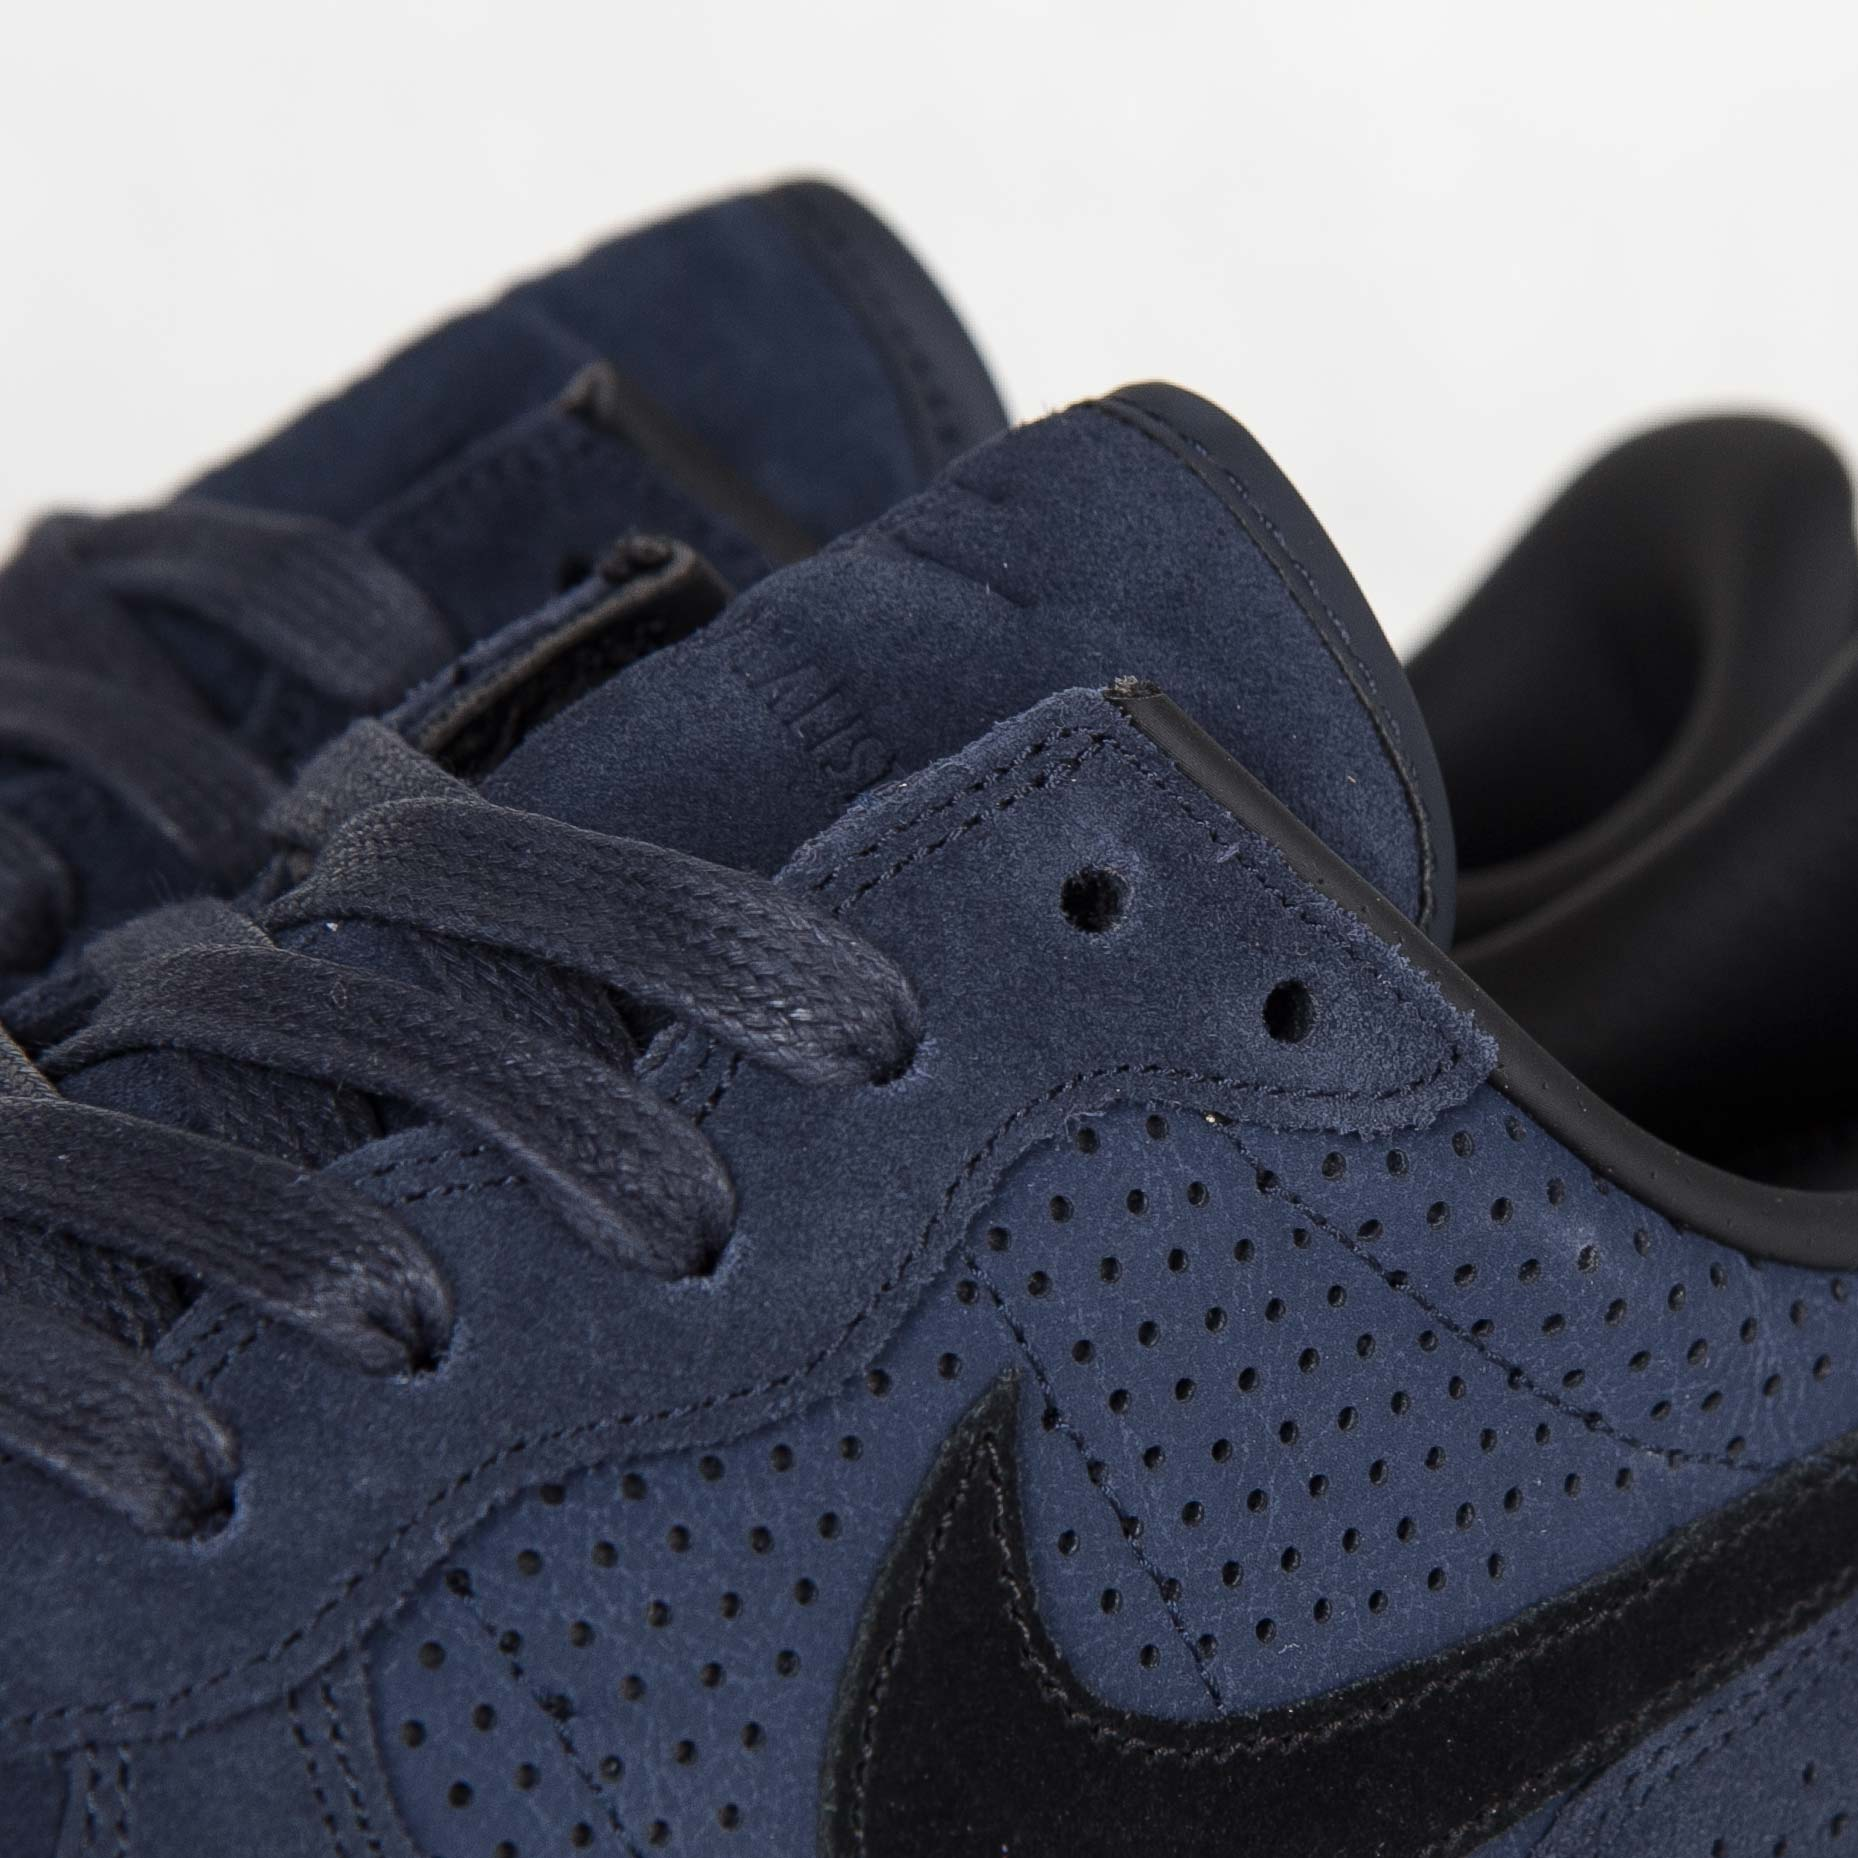 newest 9942c 57337 Nike Internationalist LX - 6. Close